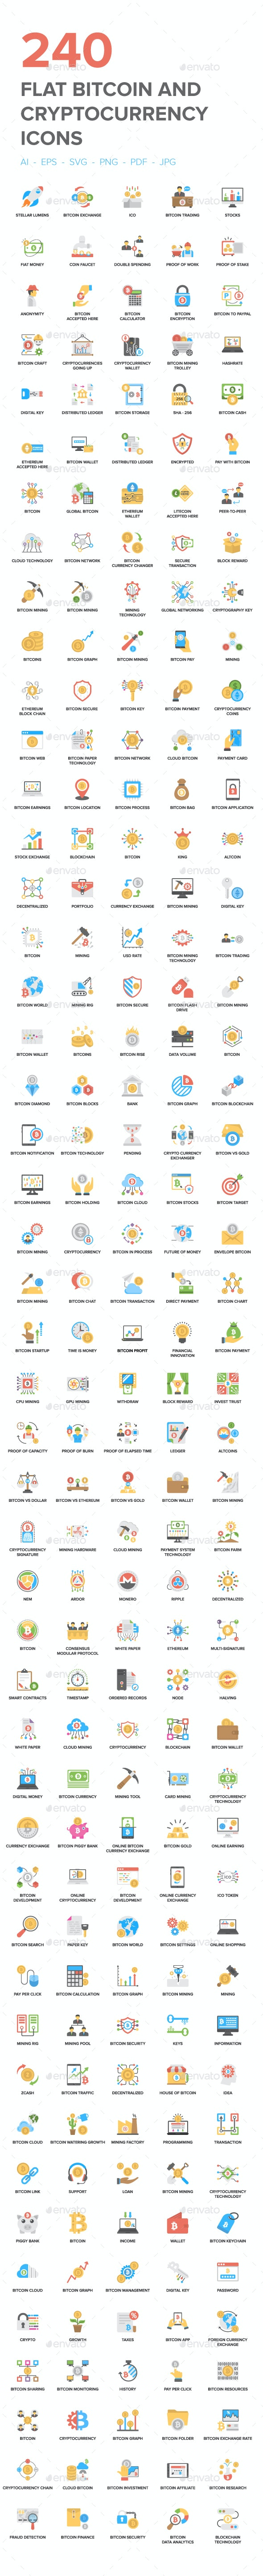 240 Bitcoin and Cryptocurrency Icon - Icons